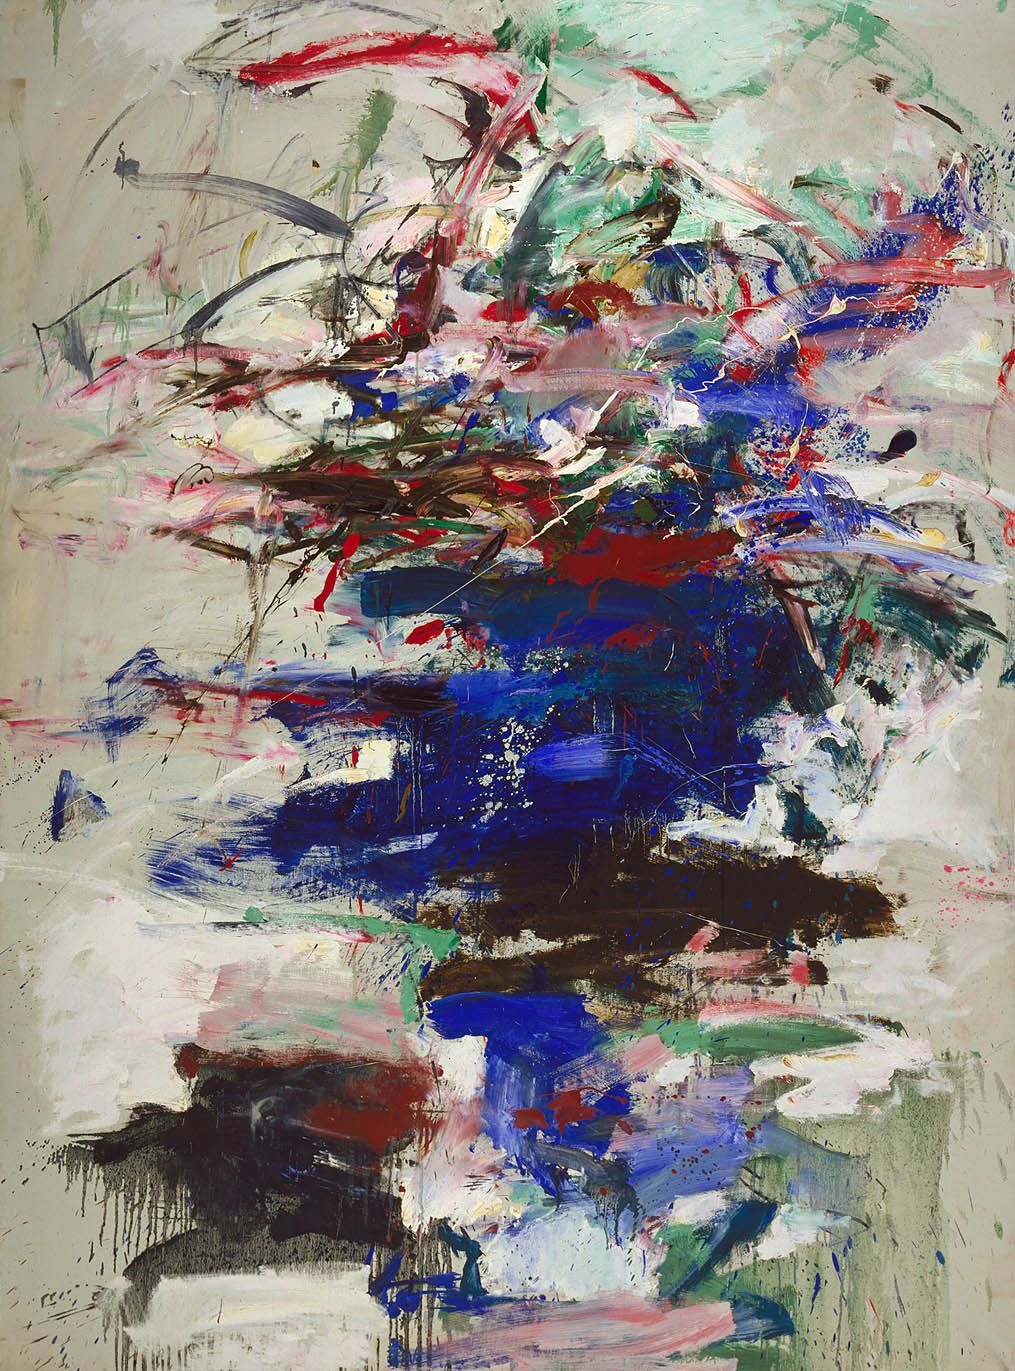 joan mitchell abstract expressionism pinteres joan mitchell abstract expressionism more